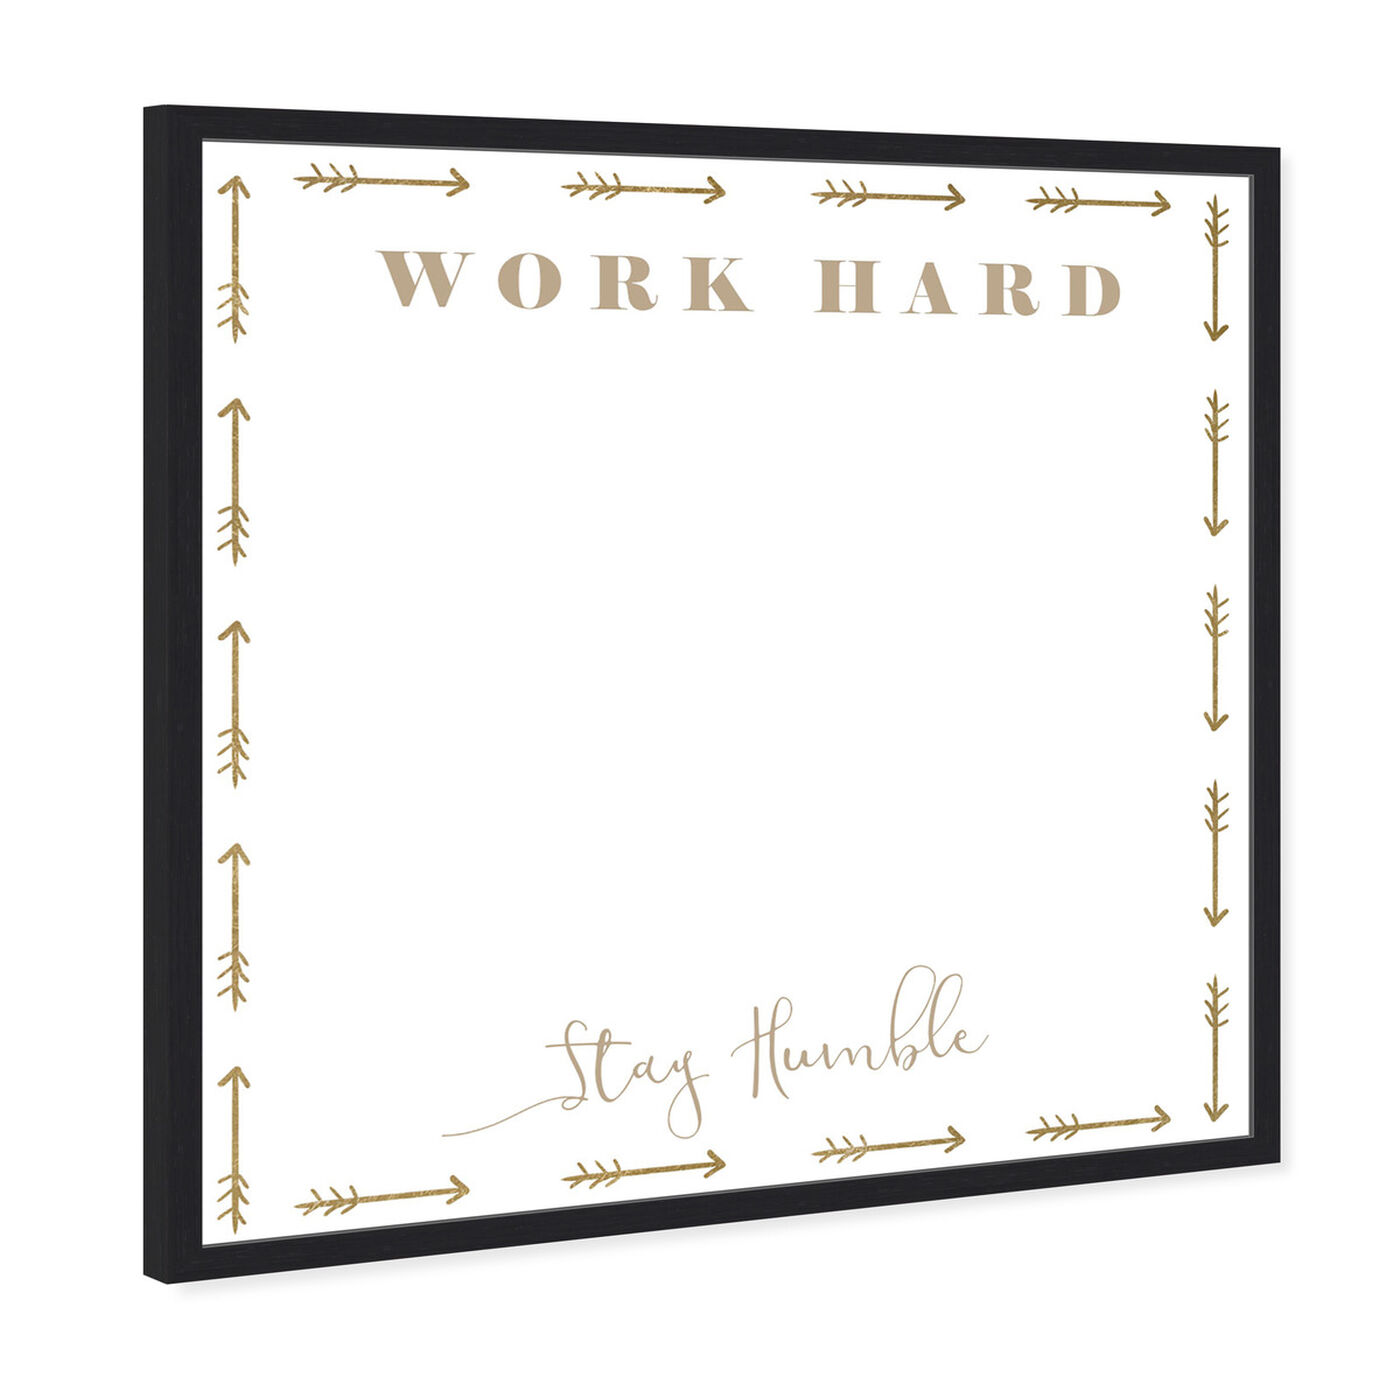 Angled view of Work Hard Stay Humble featuring education and office and whiteboards art.